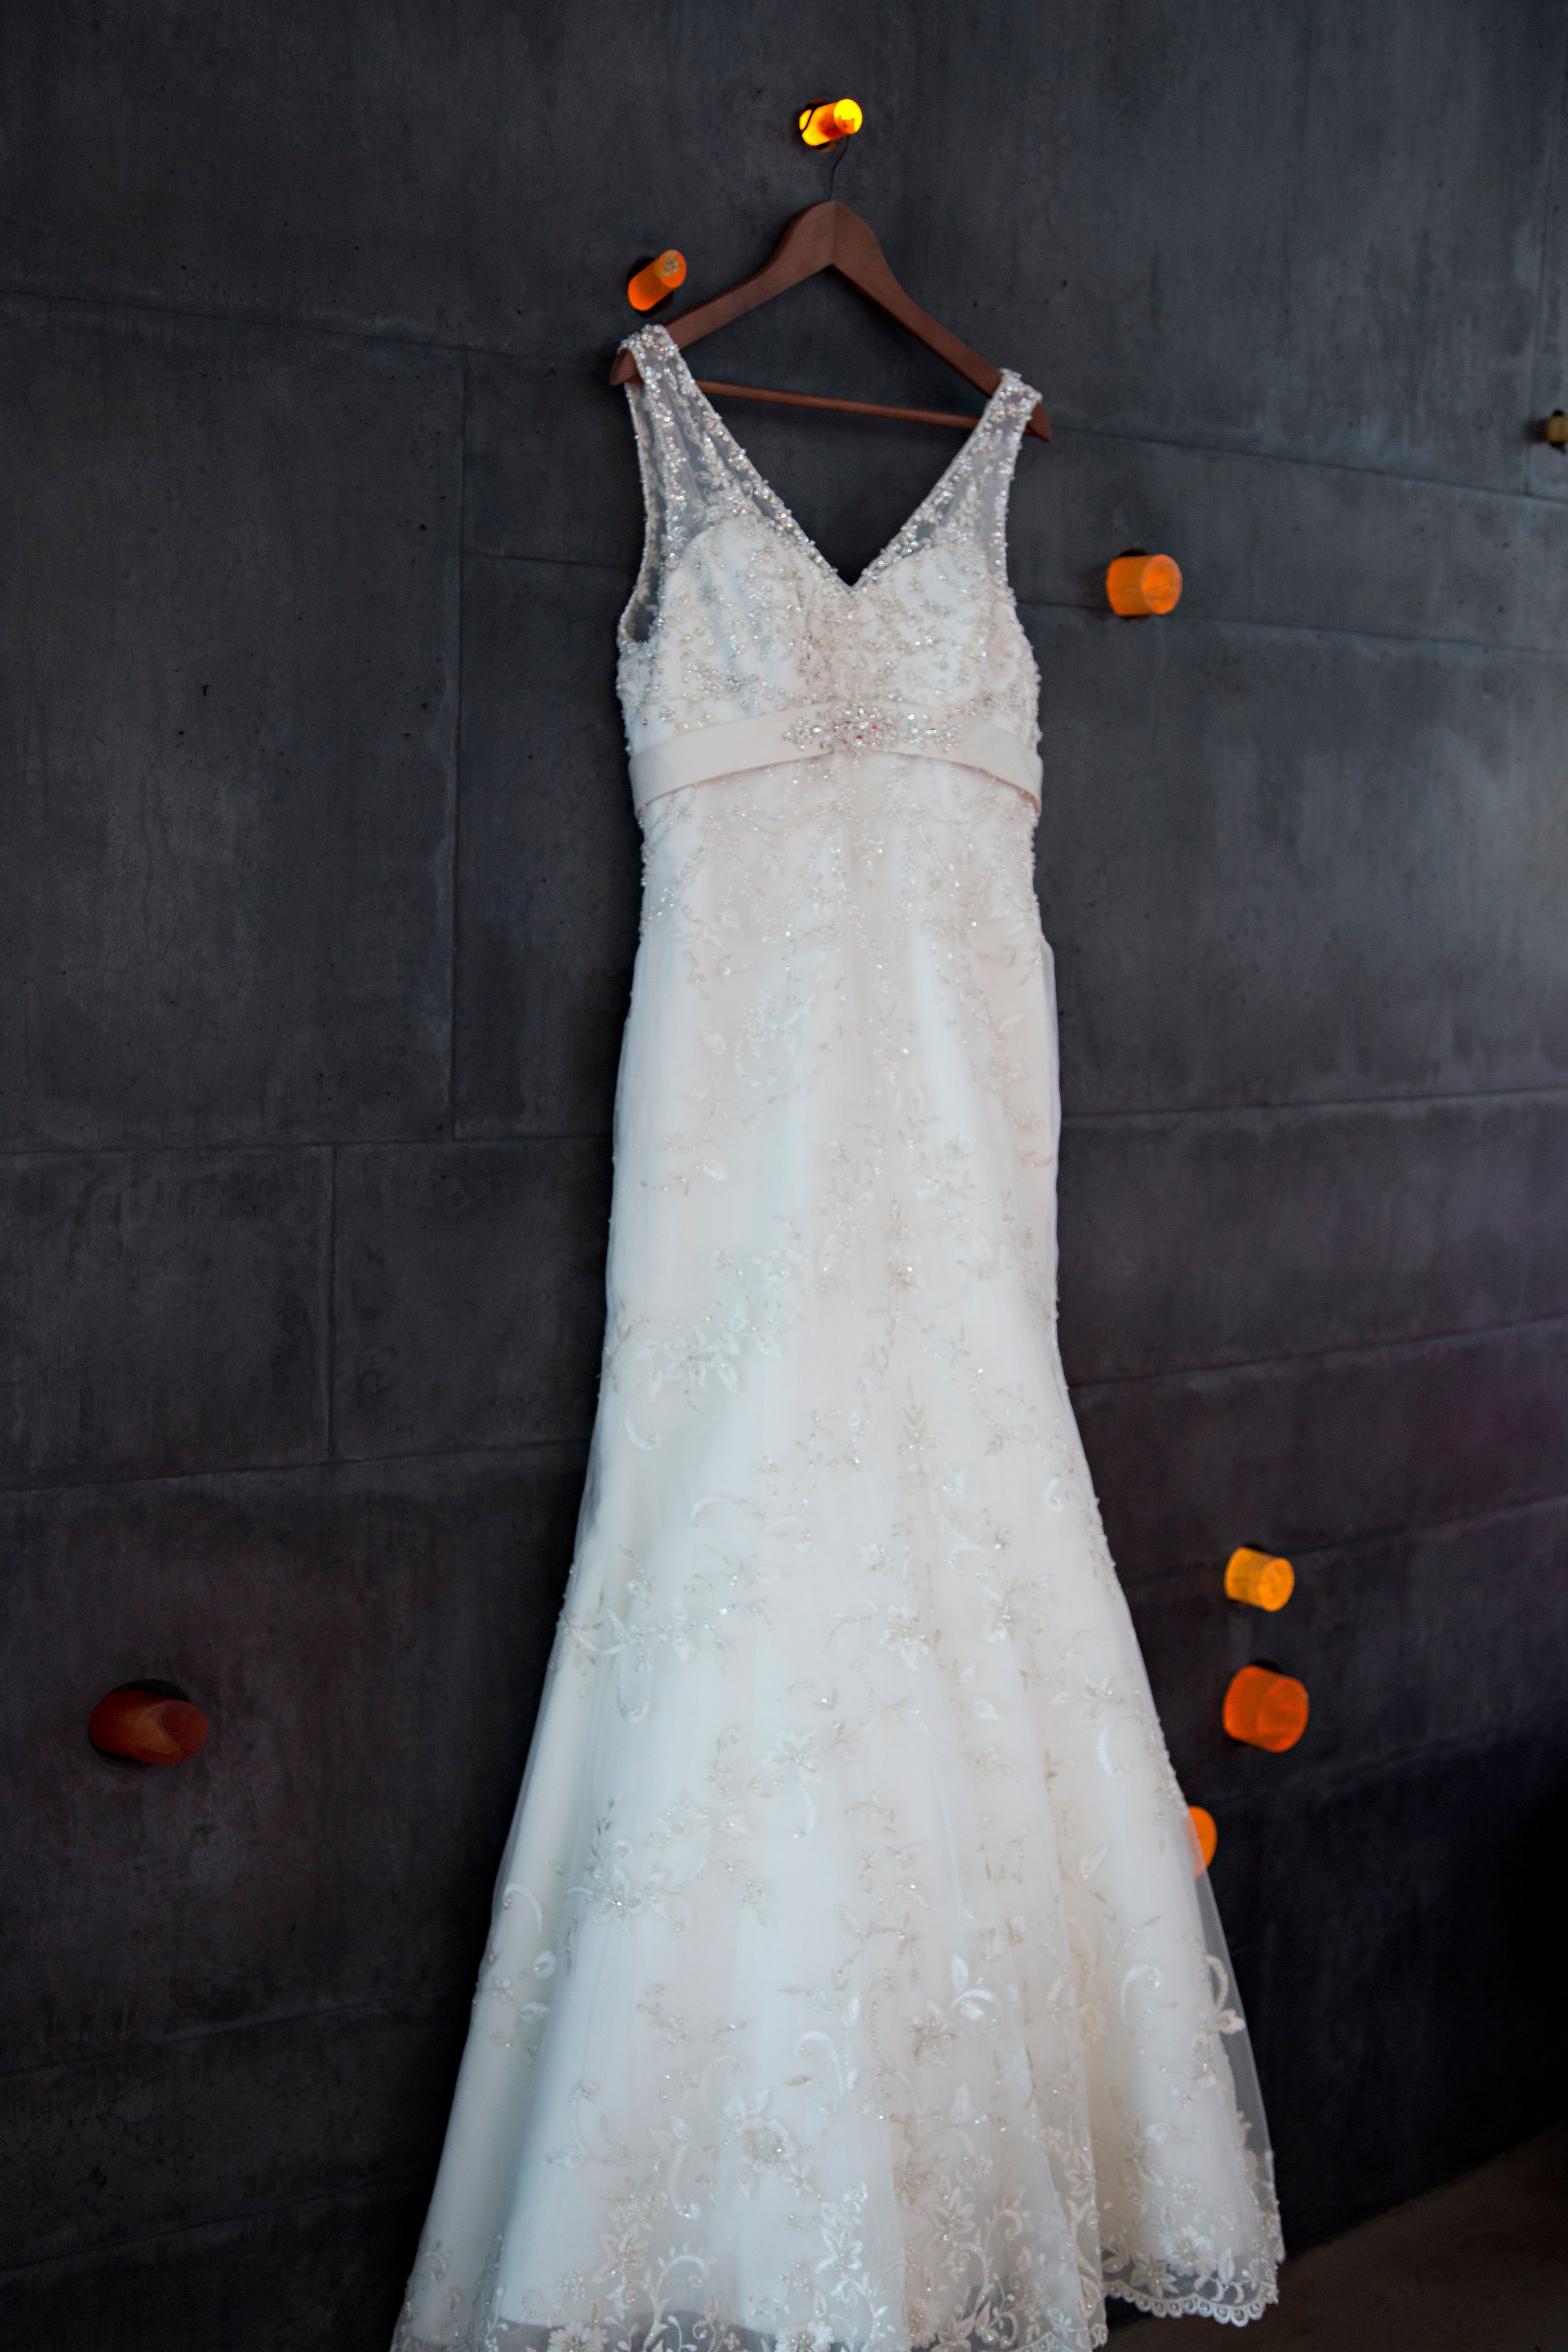 4 brides dress pretty brides dress brides dress pictures lacey brides dress O Grace Photography Life Design Events.jpg